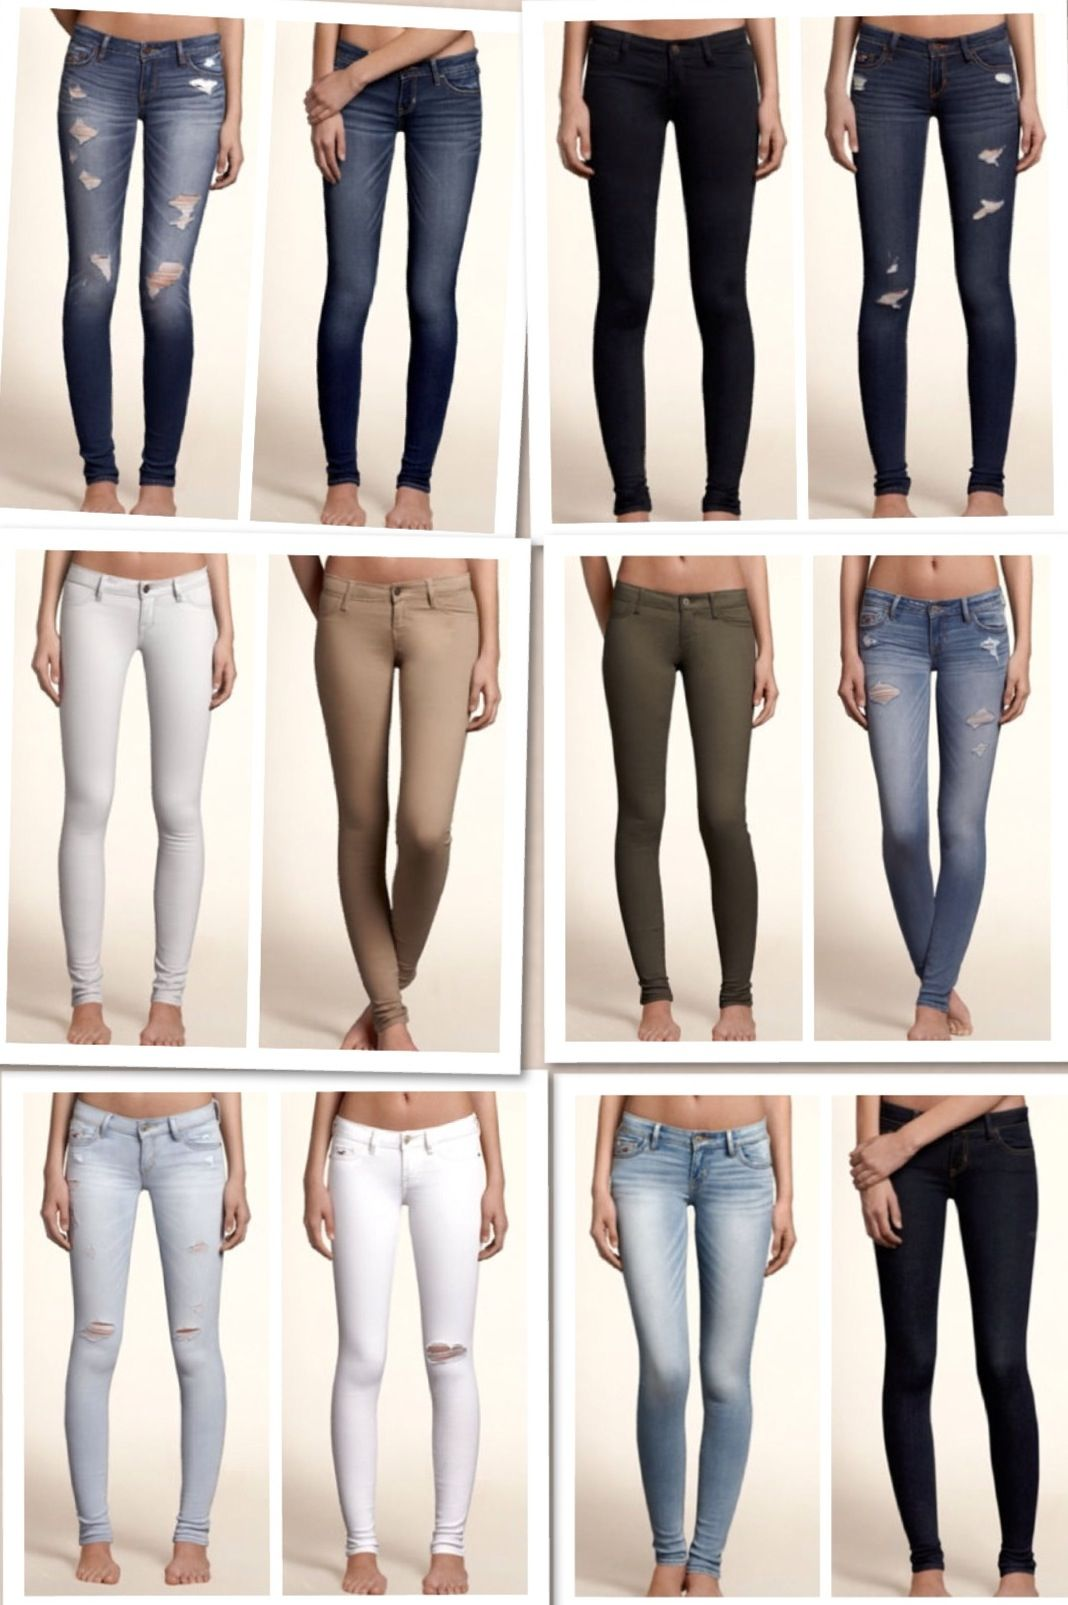 Hollister jeans are the jeans that fit me best I love them ...